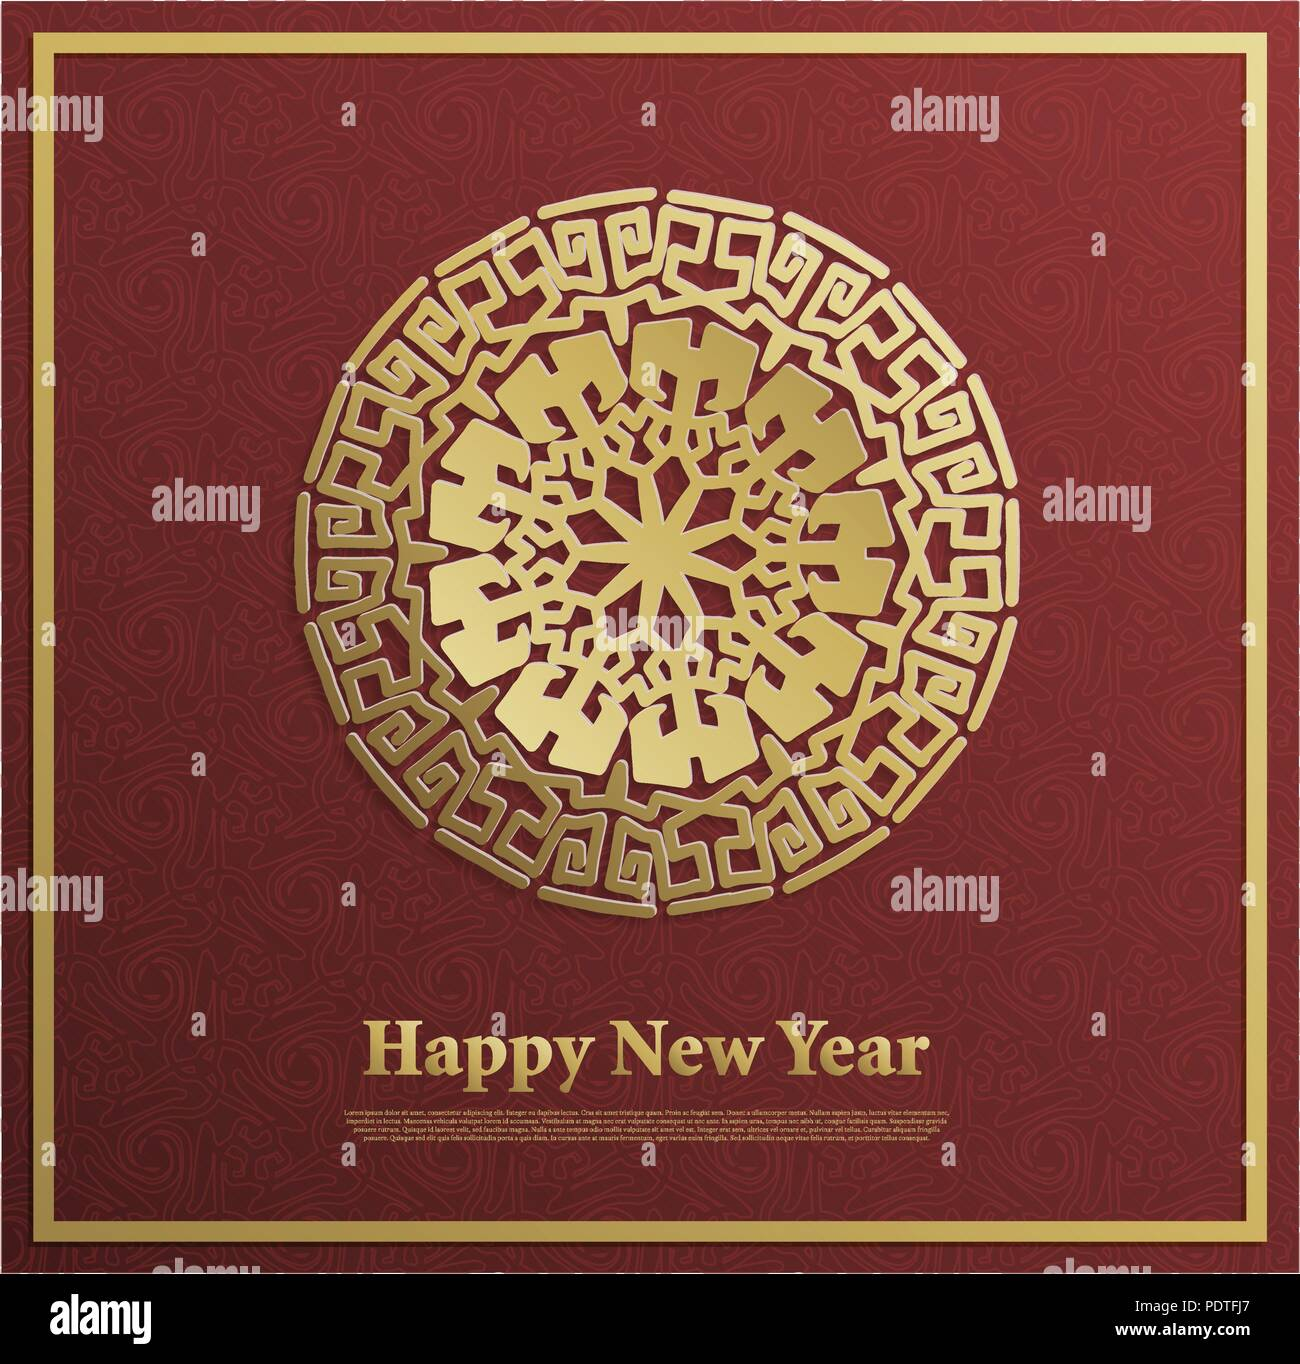 Happy New Year Greeting Card Invitation Circle Golden